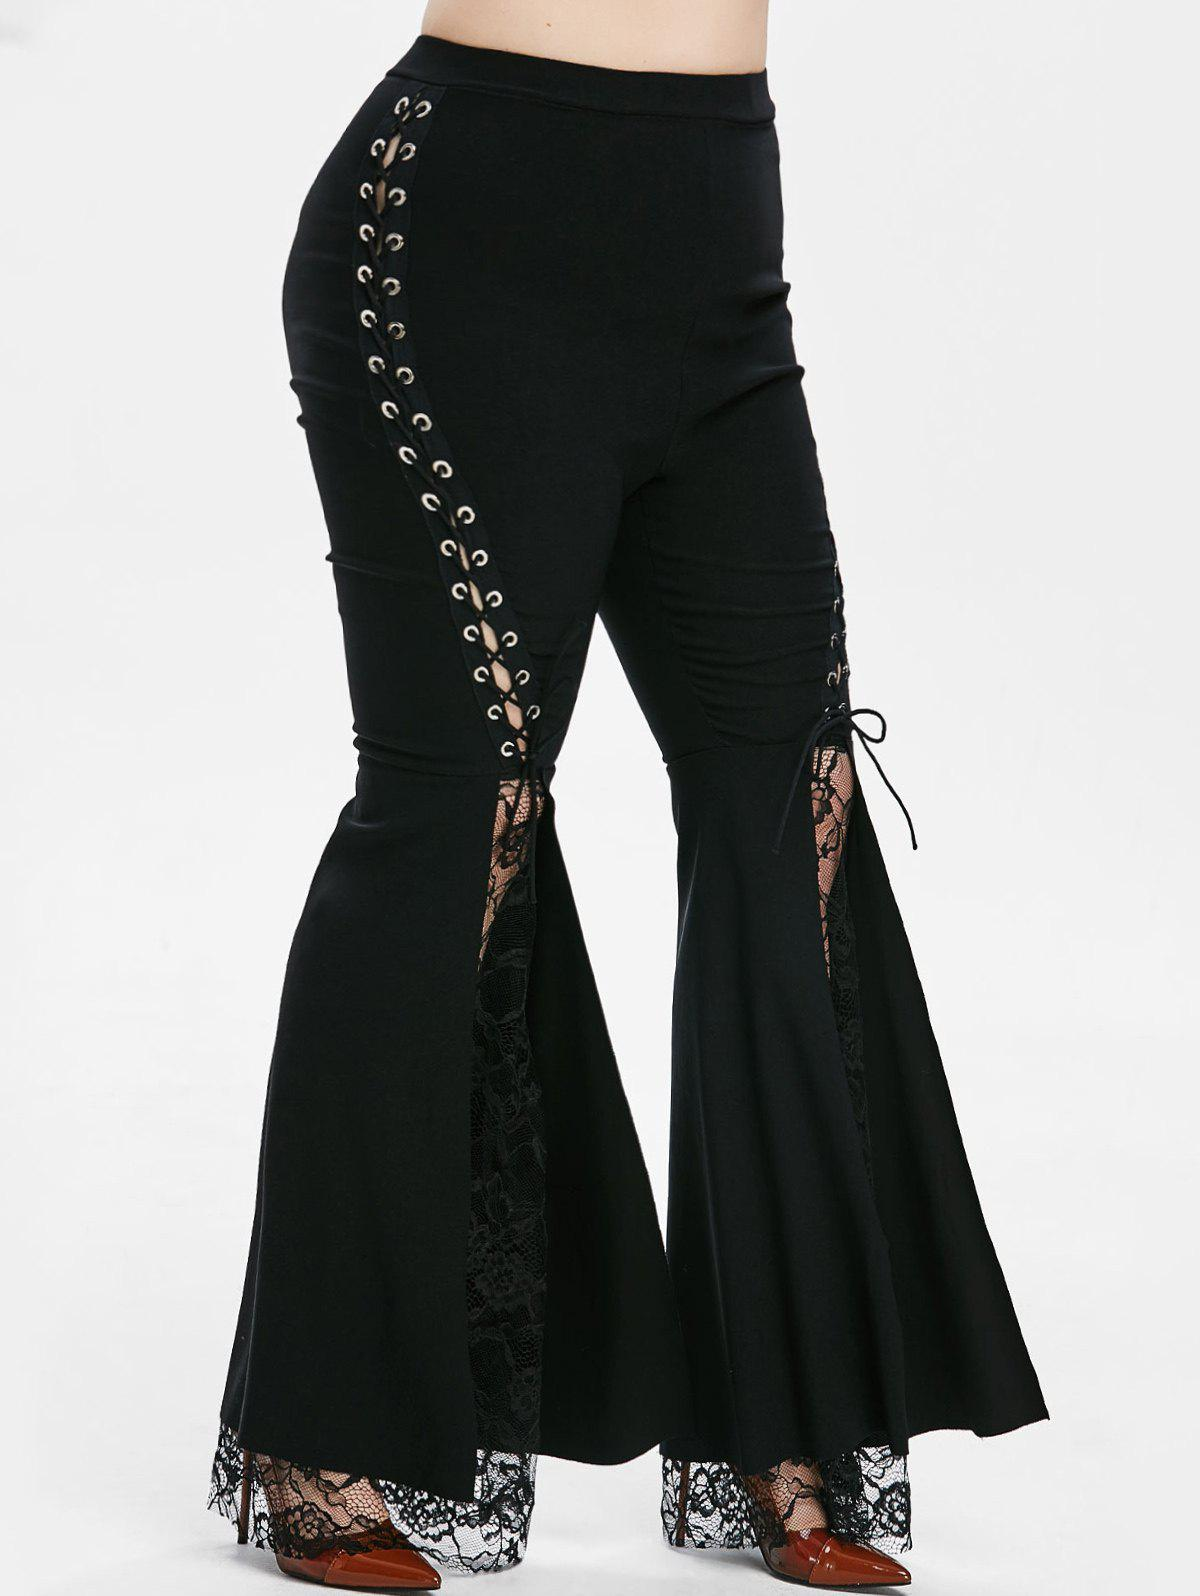 Lace Panel Lace Up High Waisted Plus Size Flare Pants - BLACK 3X